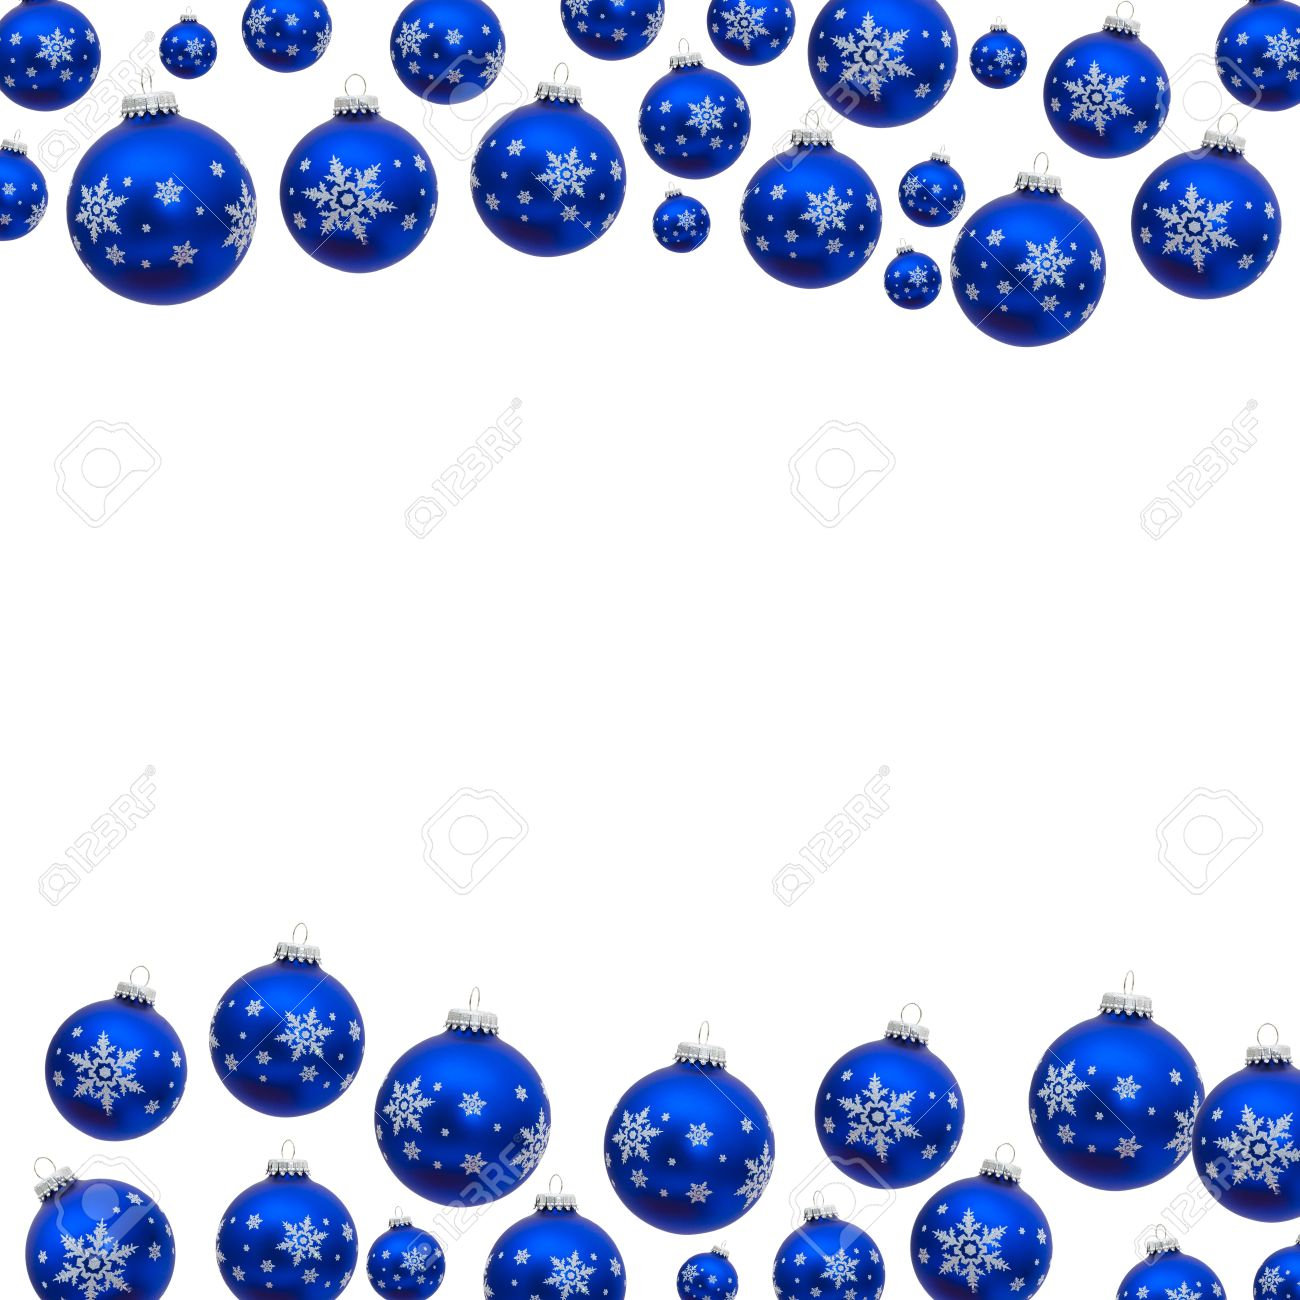 Blue Christmas Balls Making A Border With White Background Stock Photo